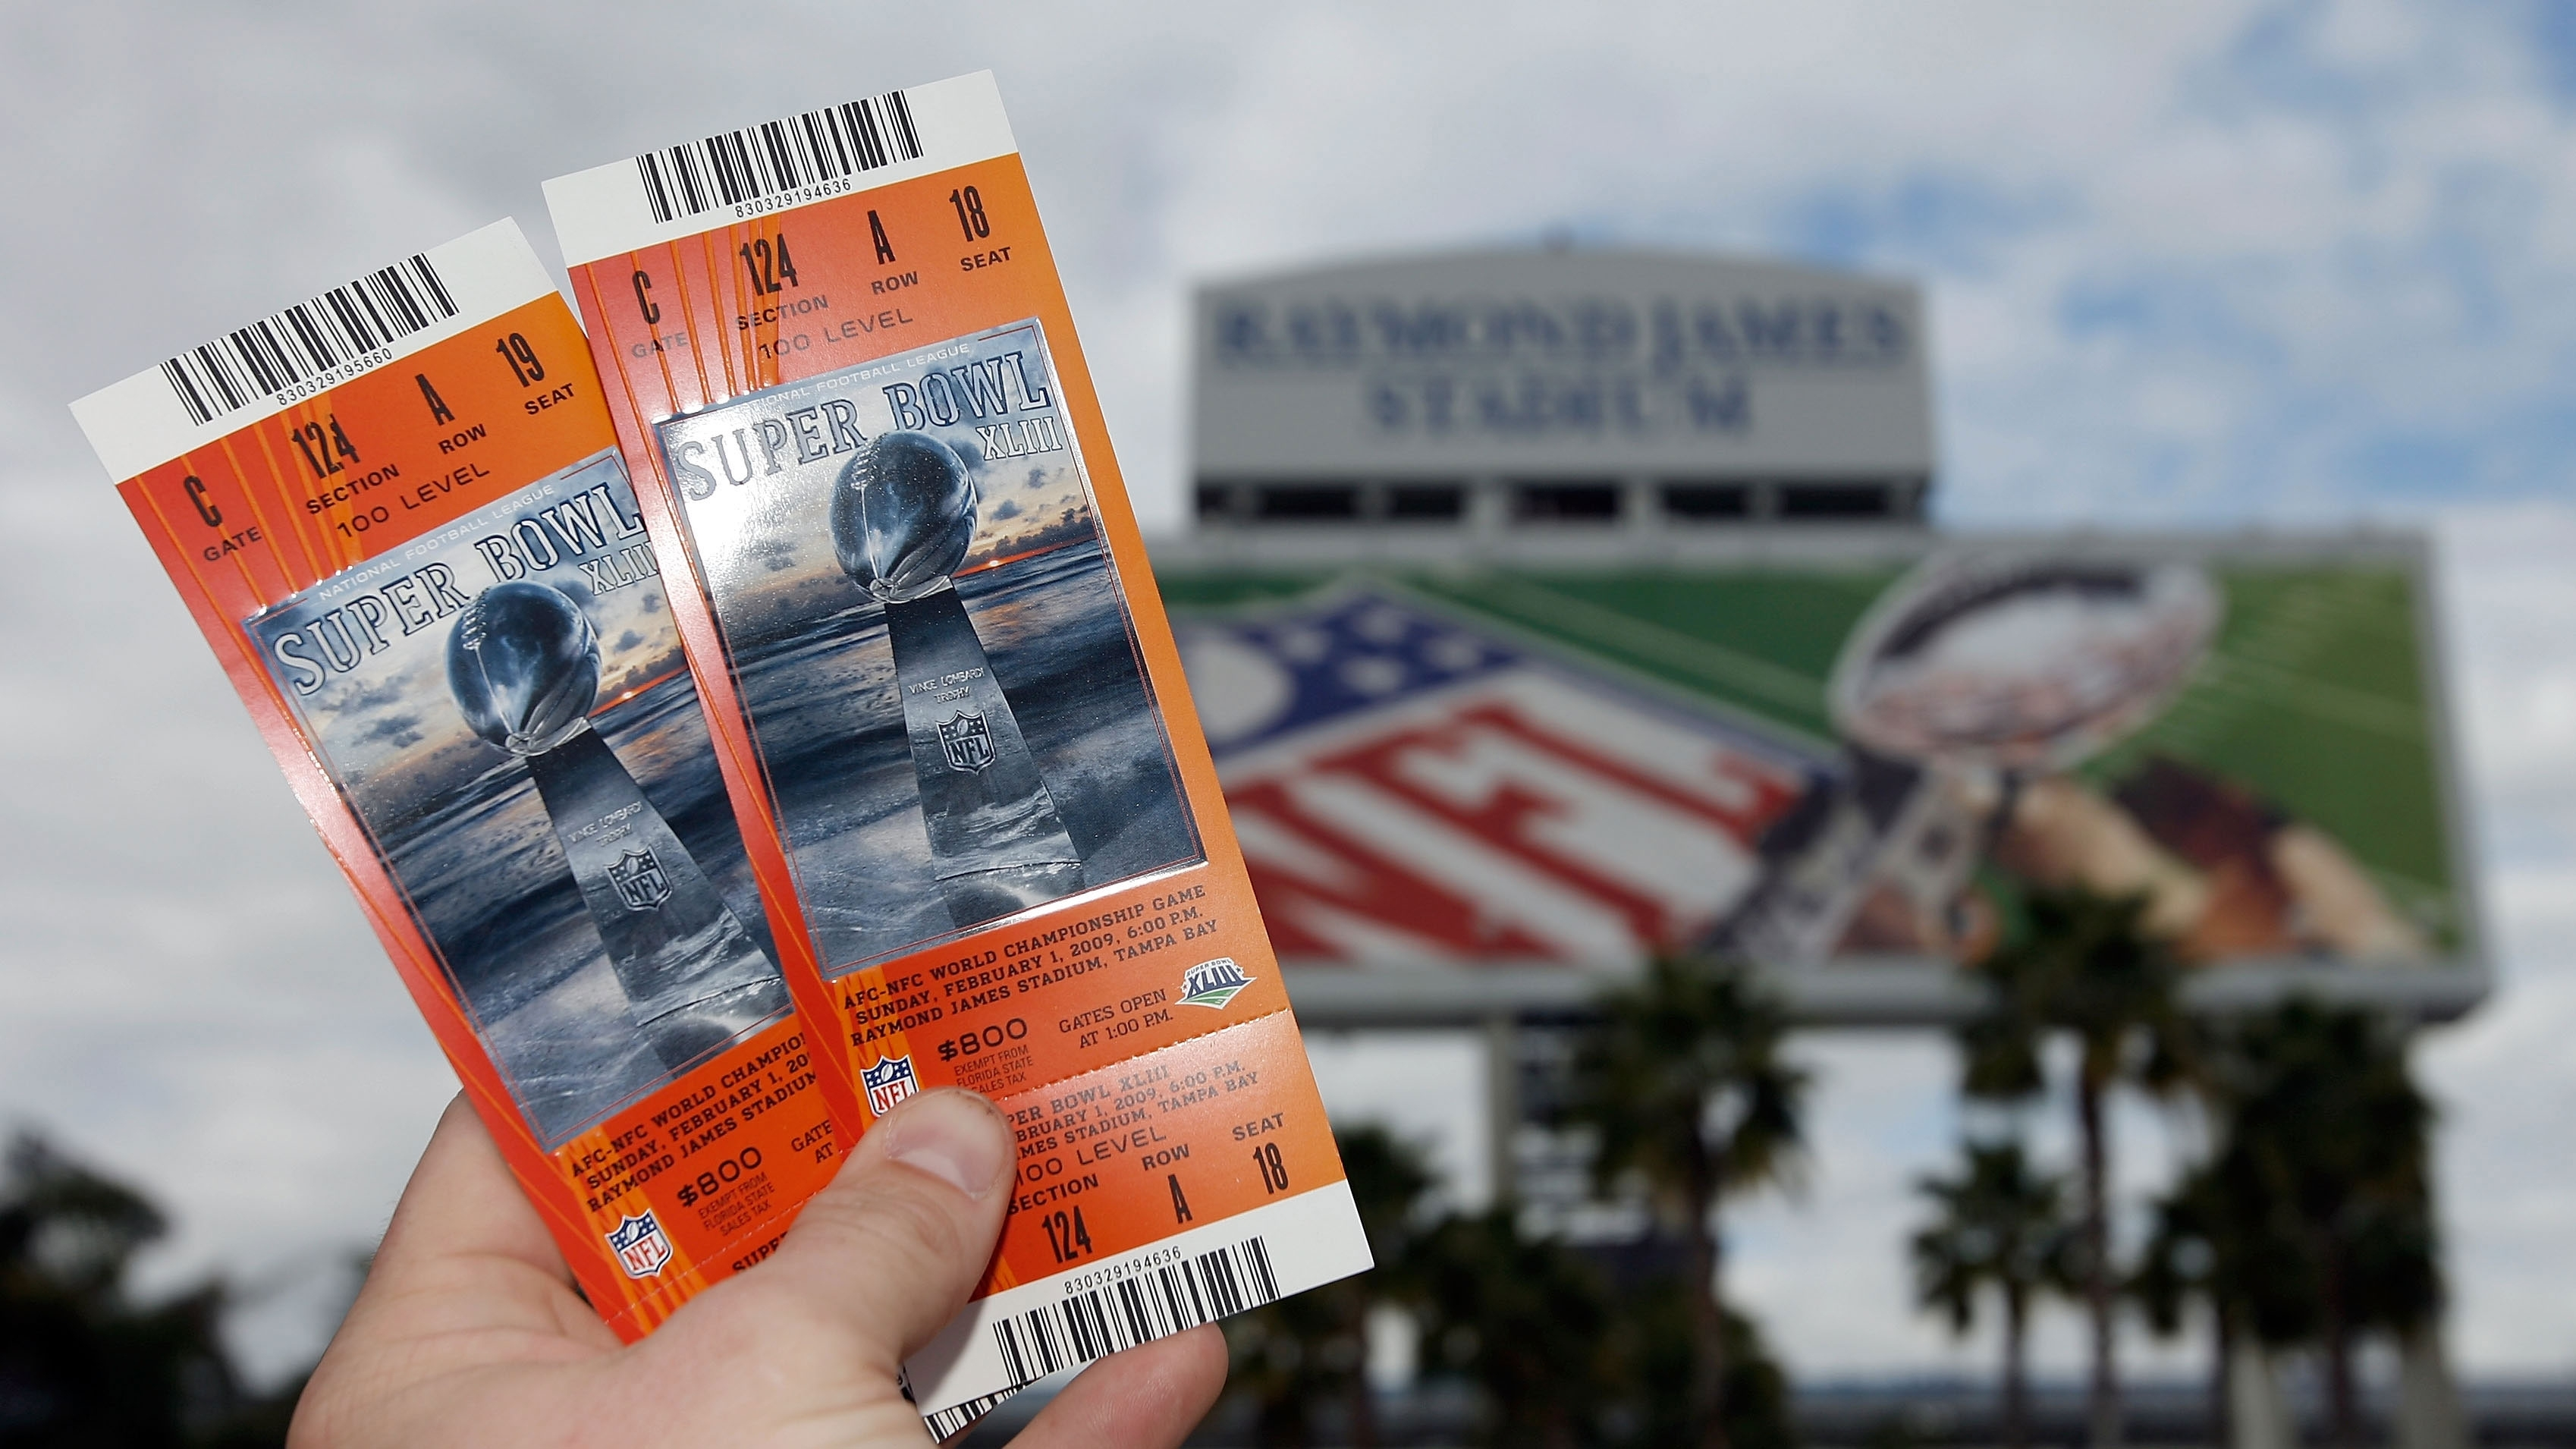 How To Get Super Bowl Tickets | Howstuffworks intended for Cost Of Super Bowl Tickets